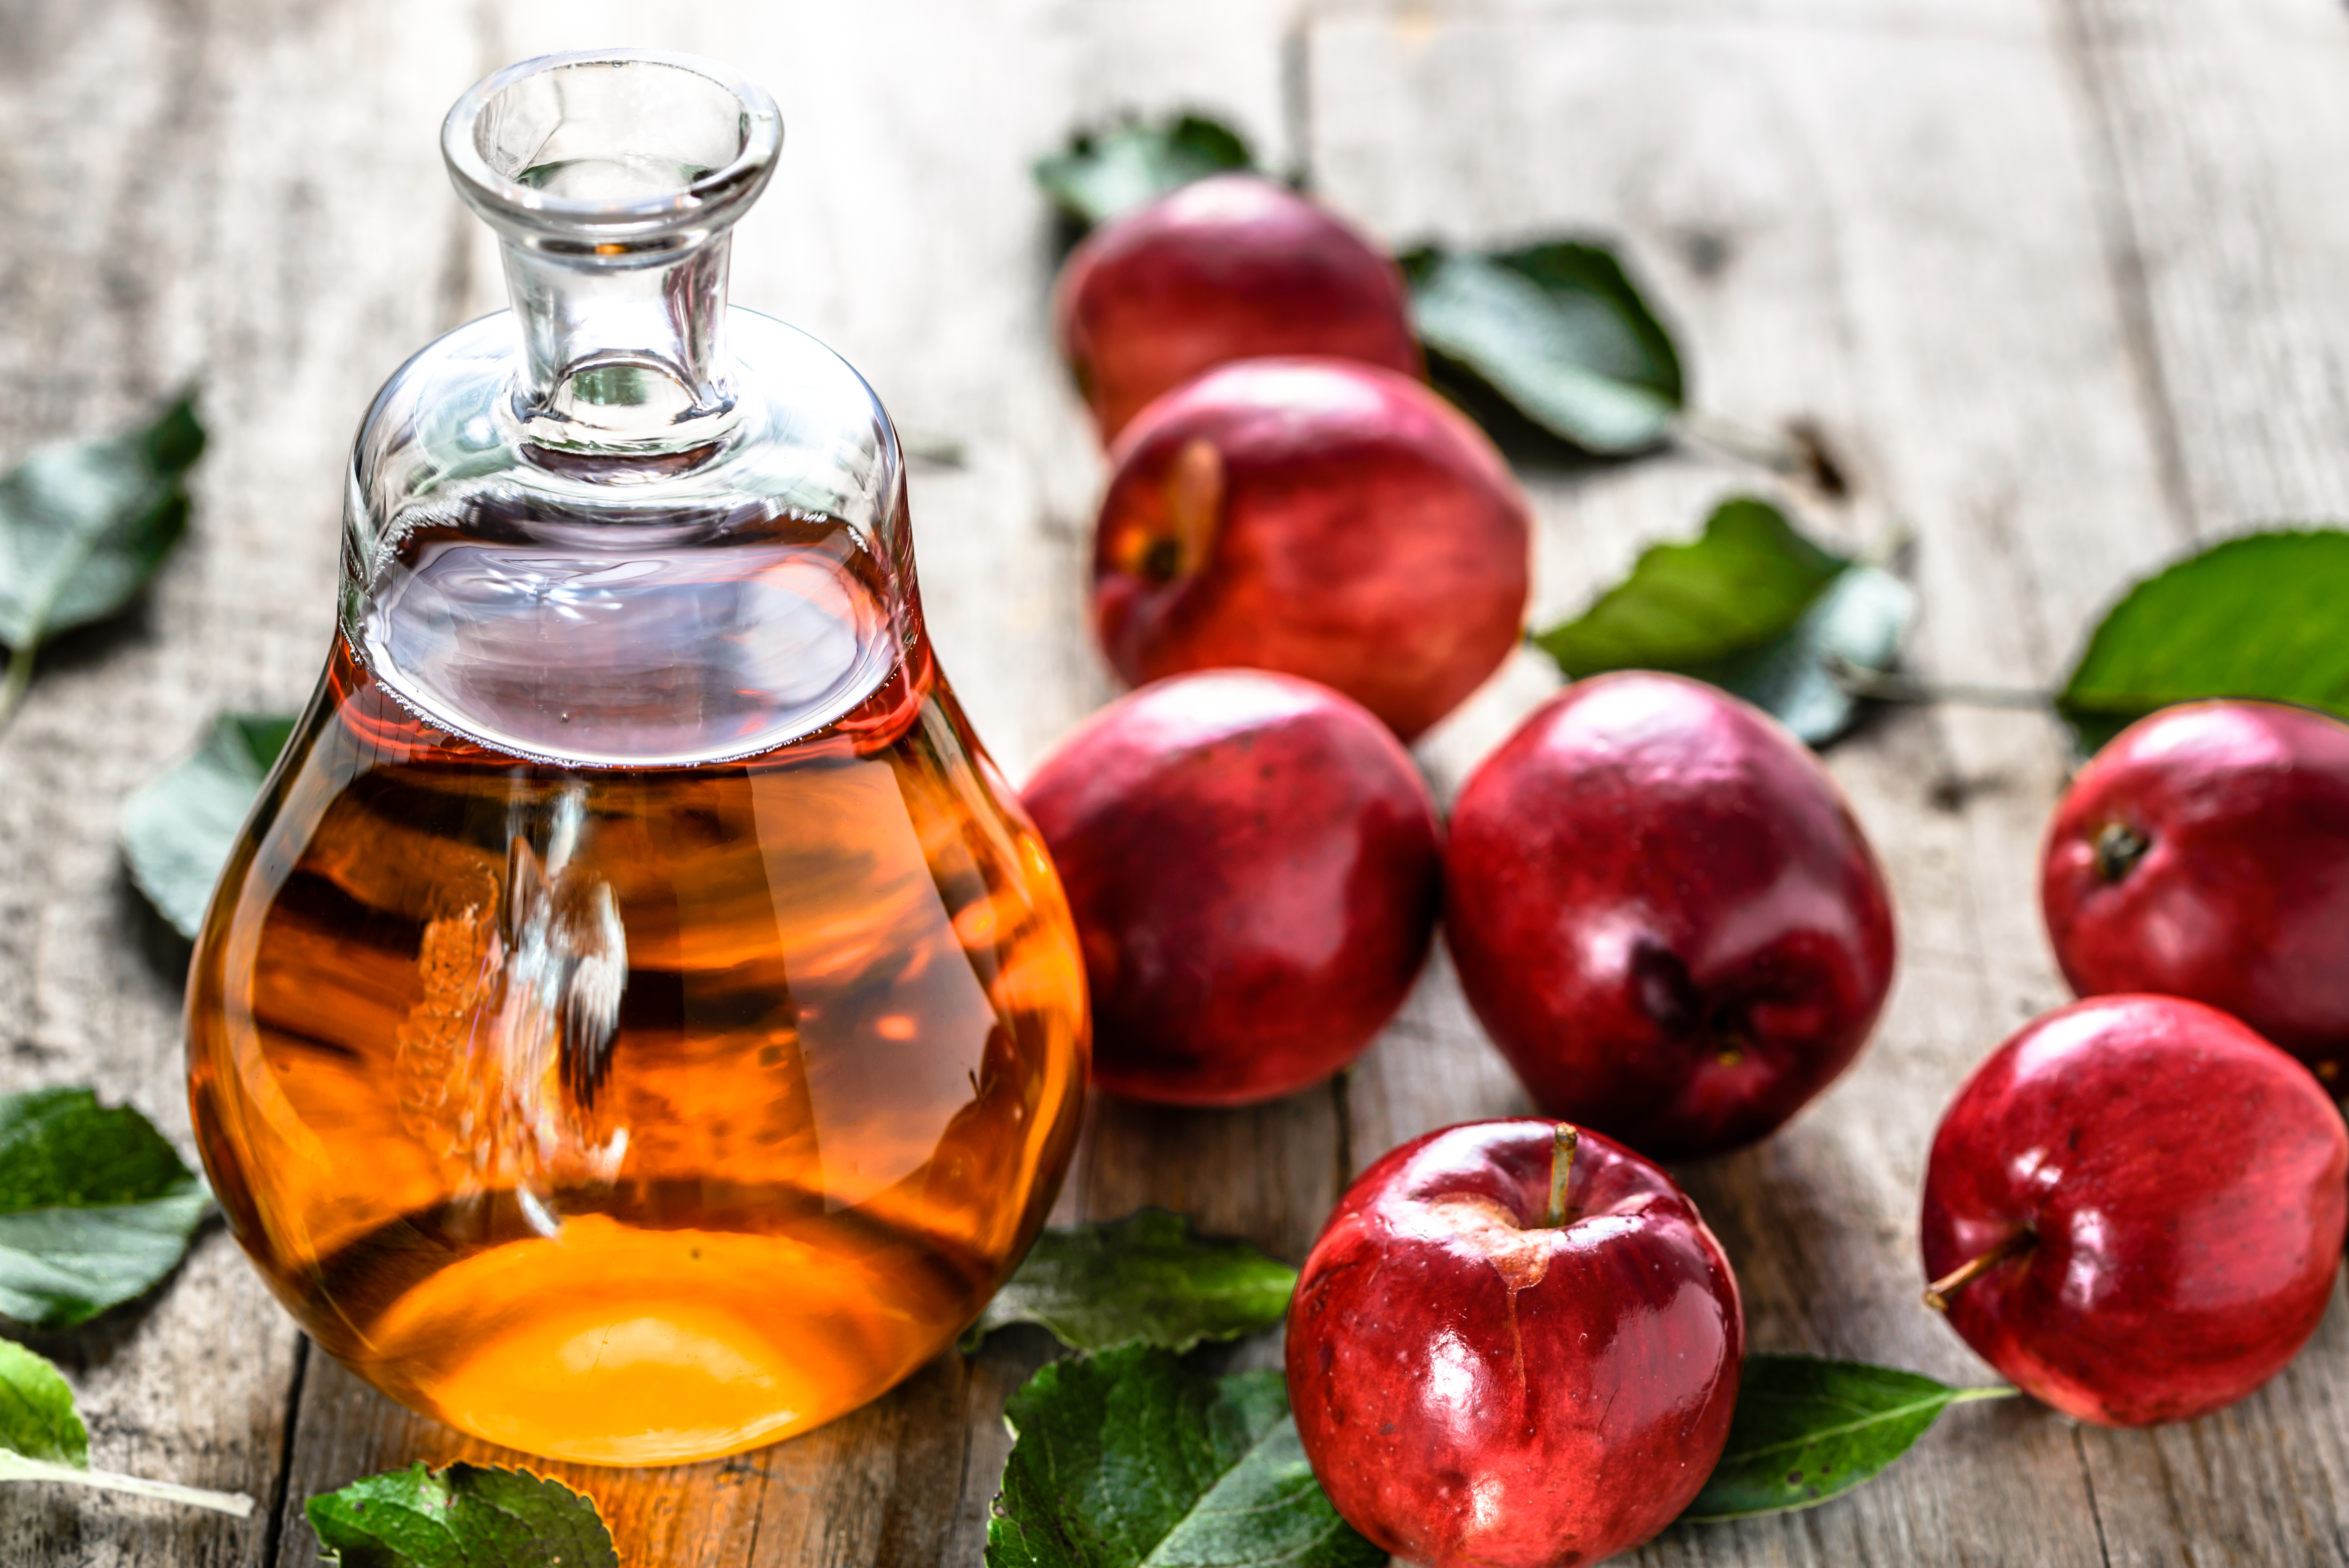 How to Get Rid of Ants With Apple Vinegar | Home Guides | SF Gate